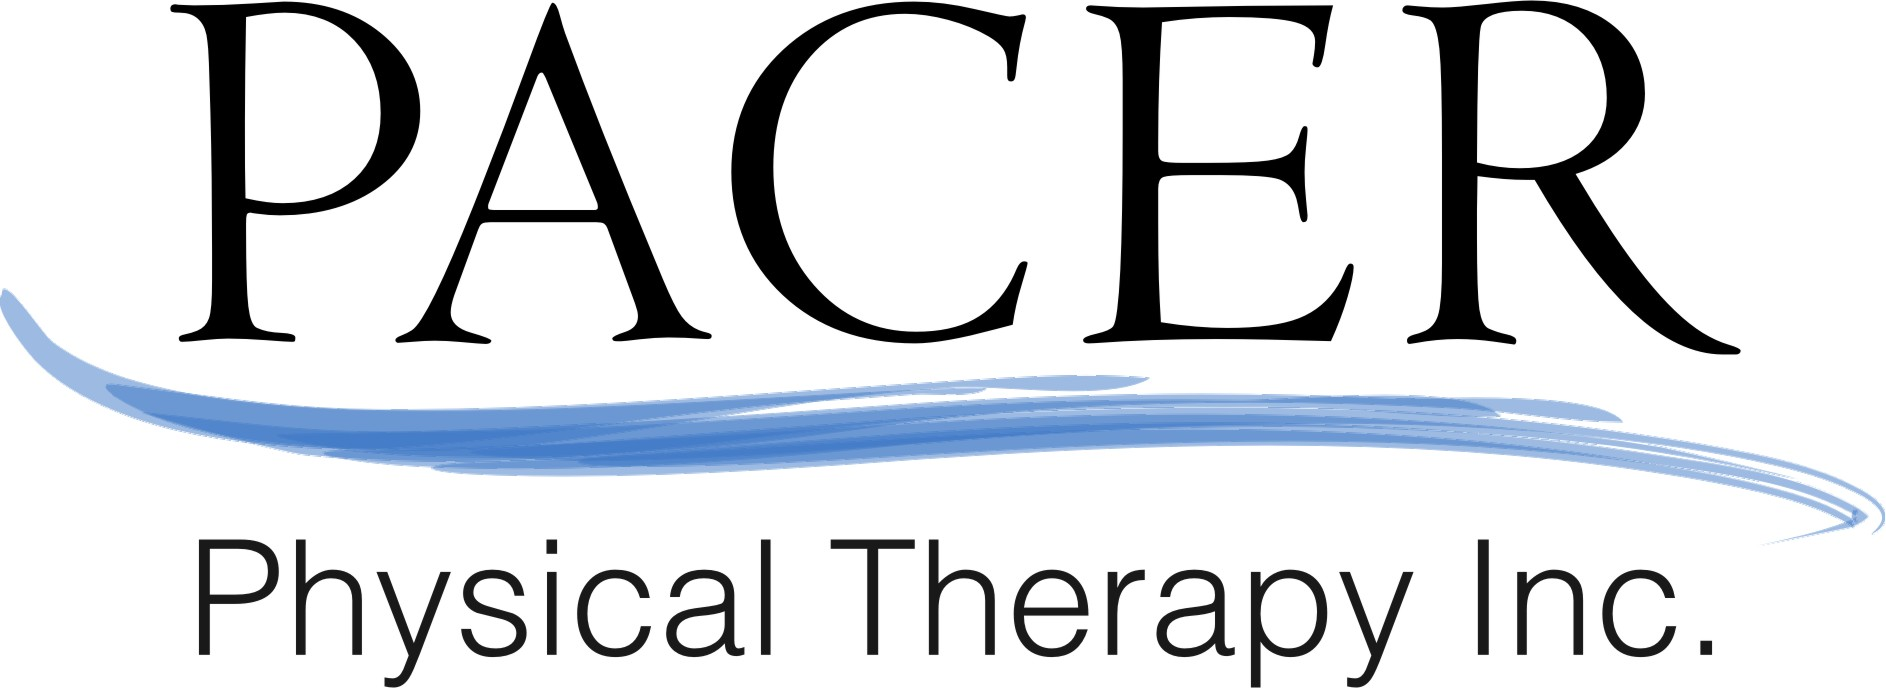 Pacer Physical Therapy Inc., San Ramon, CA logo